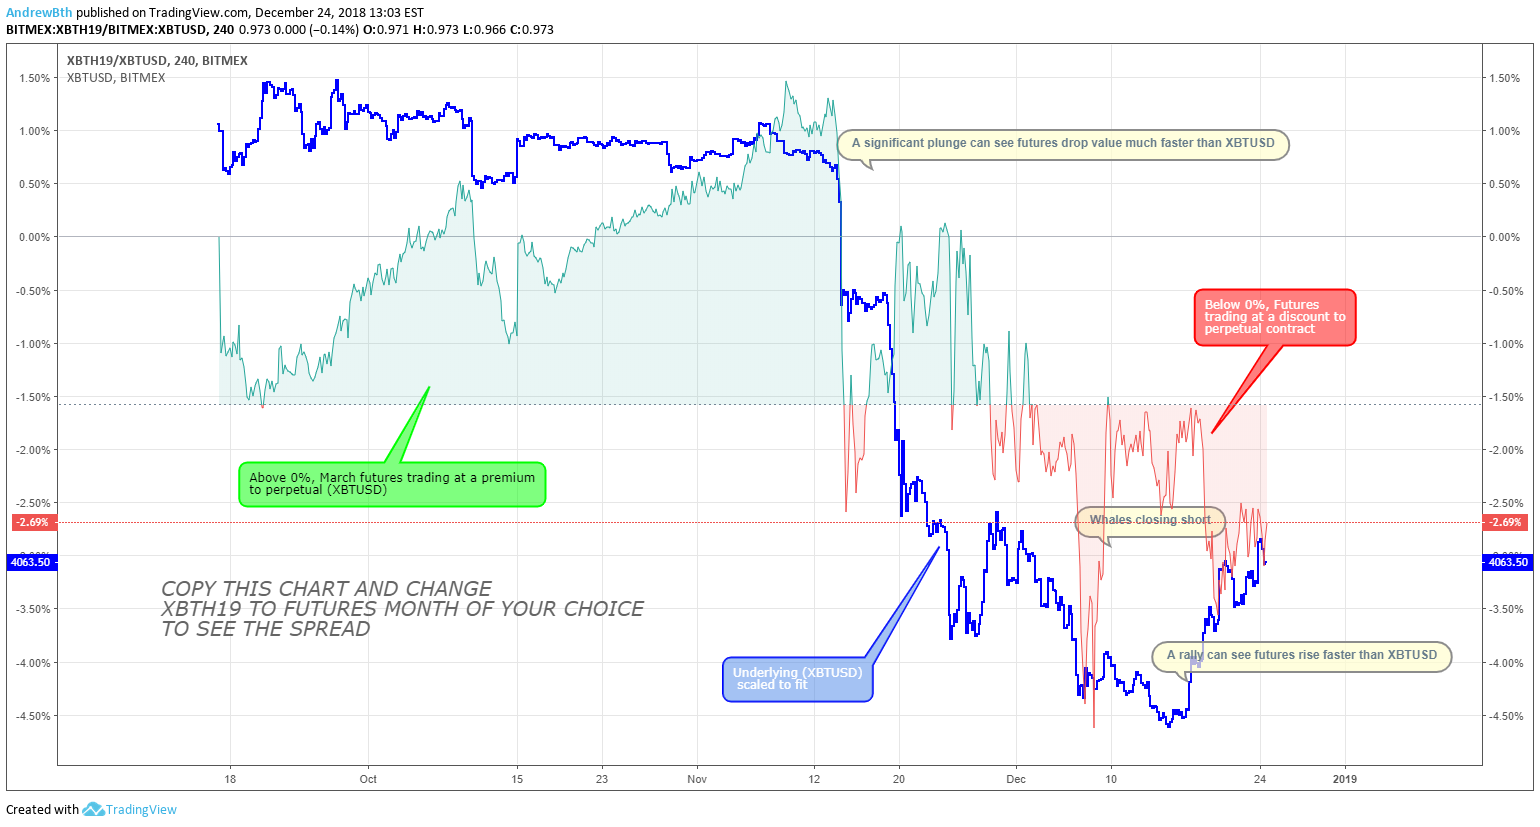 Analysis of Bitmex Futures spreads for BITMEX:XBTH19 by AndrewBth